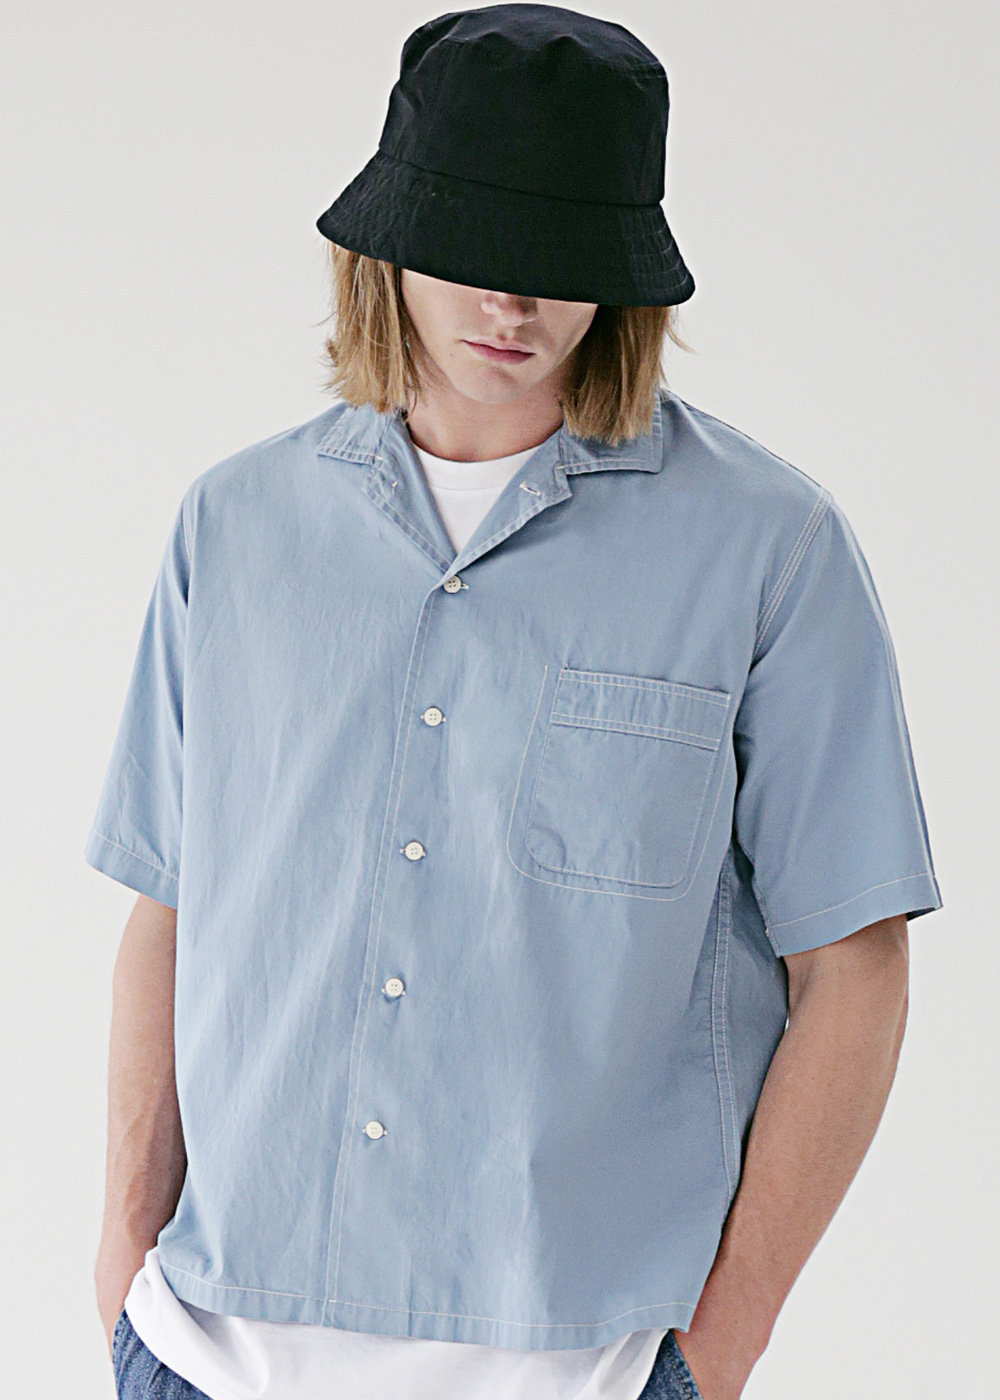 STICH LINE POCKET BASIC SHIRTS MSEST009-BL